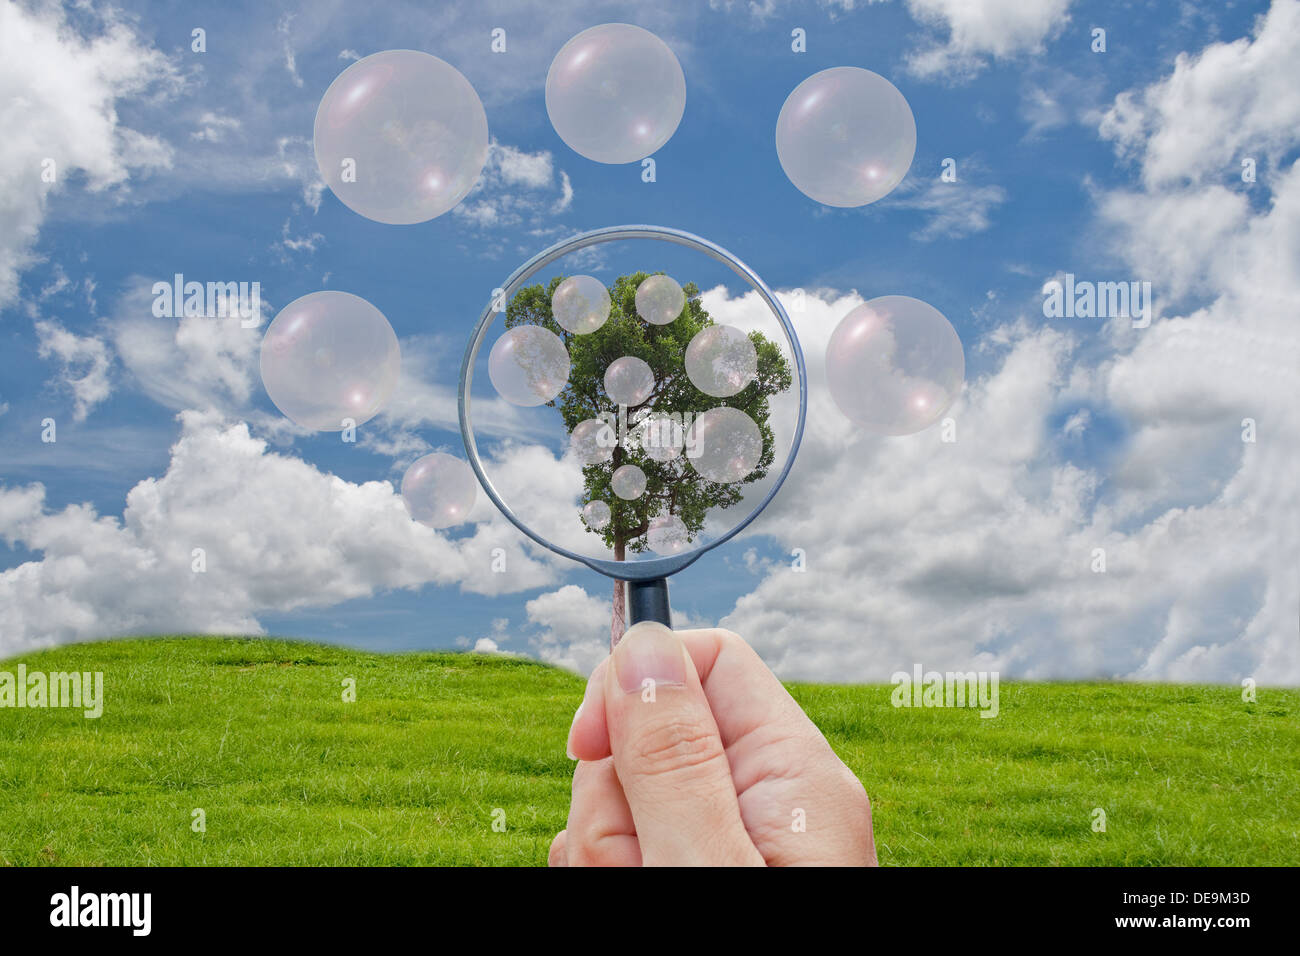 Air oxygen bubble earth world map ball sky blue cloude air stock air oxygen bubble earth world map ball sky blue cloude air backgrounds blue bubble clean clear condensation cool fresh freshness gumiabroncs Choice Image